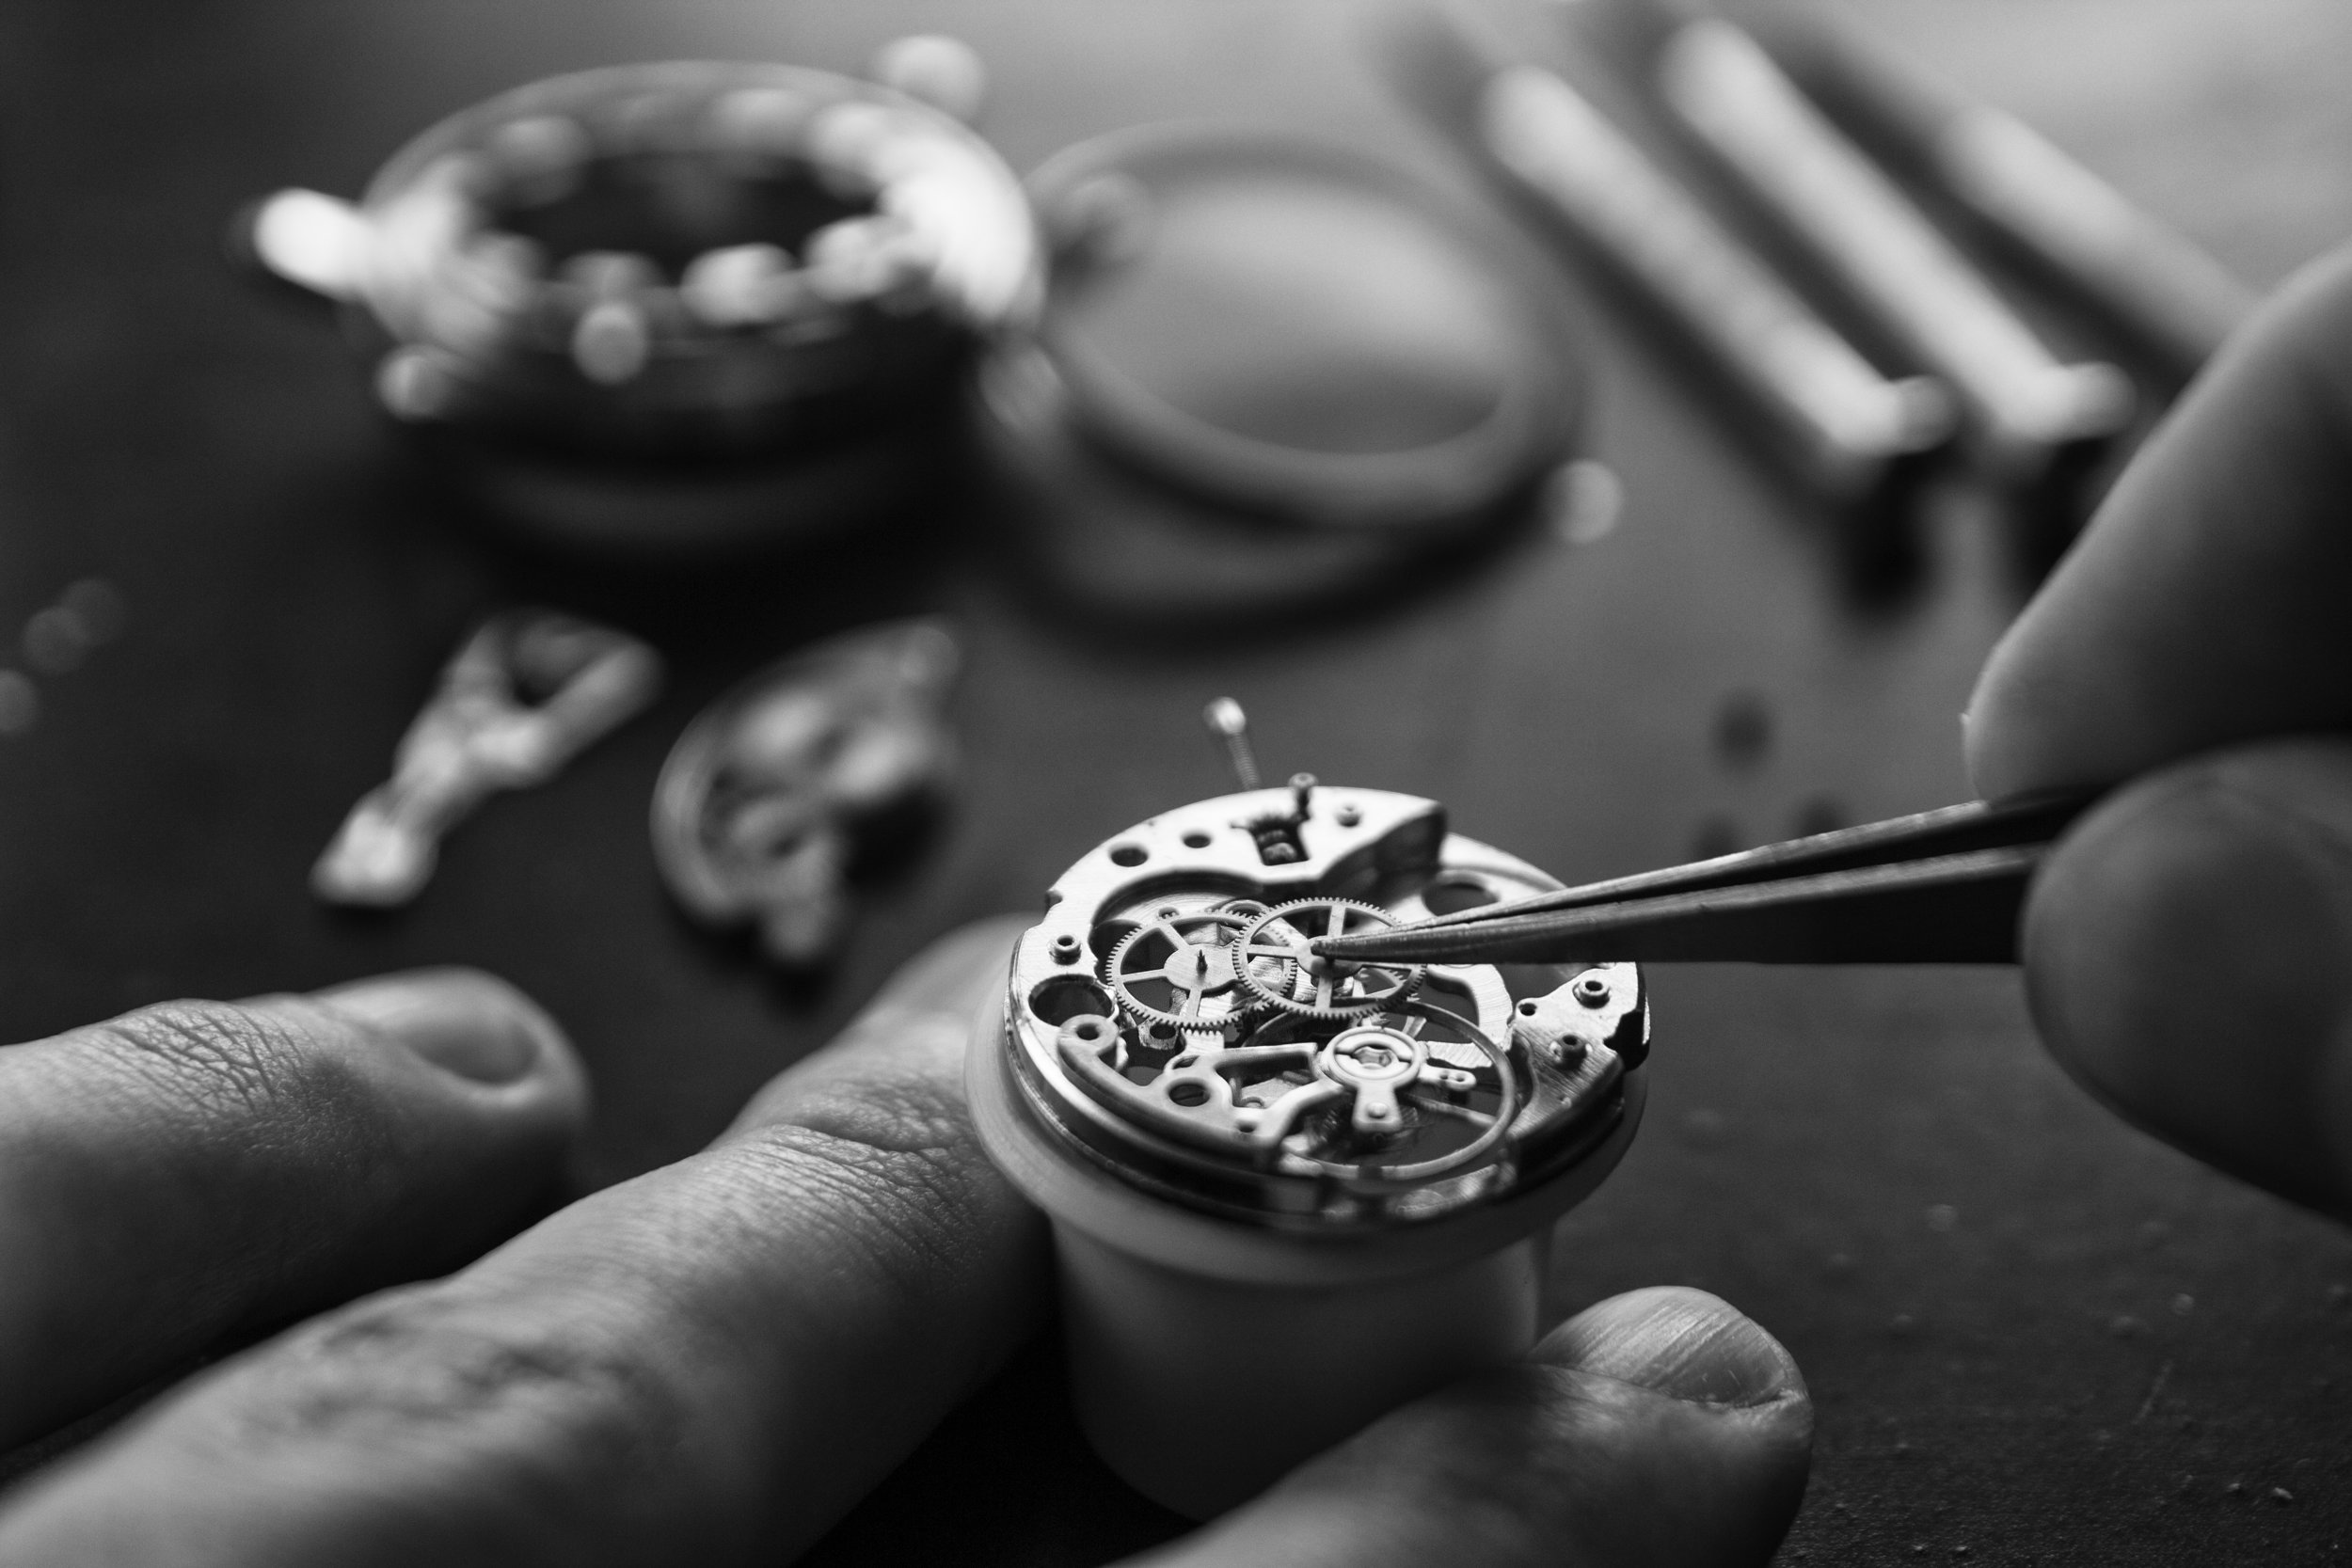 Watch Repair - Having an On-Site Watchmaker means we don't send your watch out. We service ALL major Swiss brands, inlcuding Rolex, Omega, Breitling, Tag Heuer, Cartier, Hamilton, Concord, Baume et Mercier, Rado, Gucci, etc.